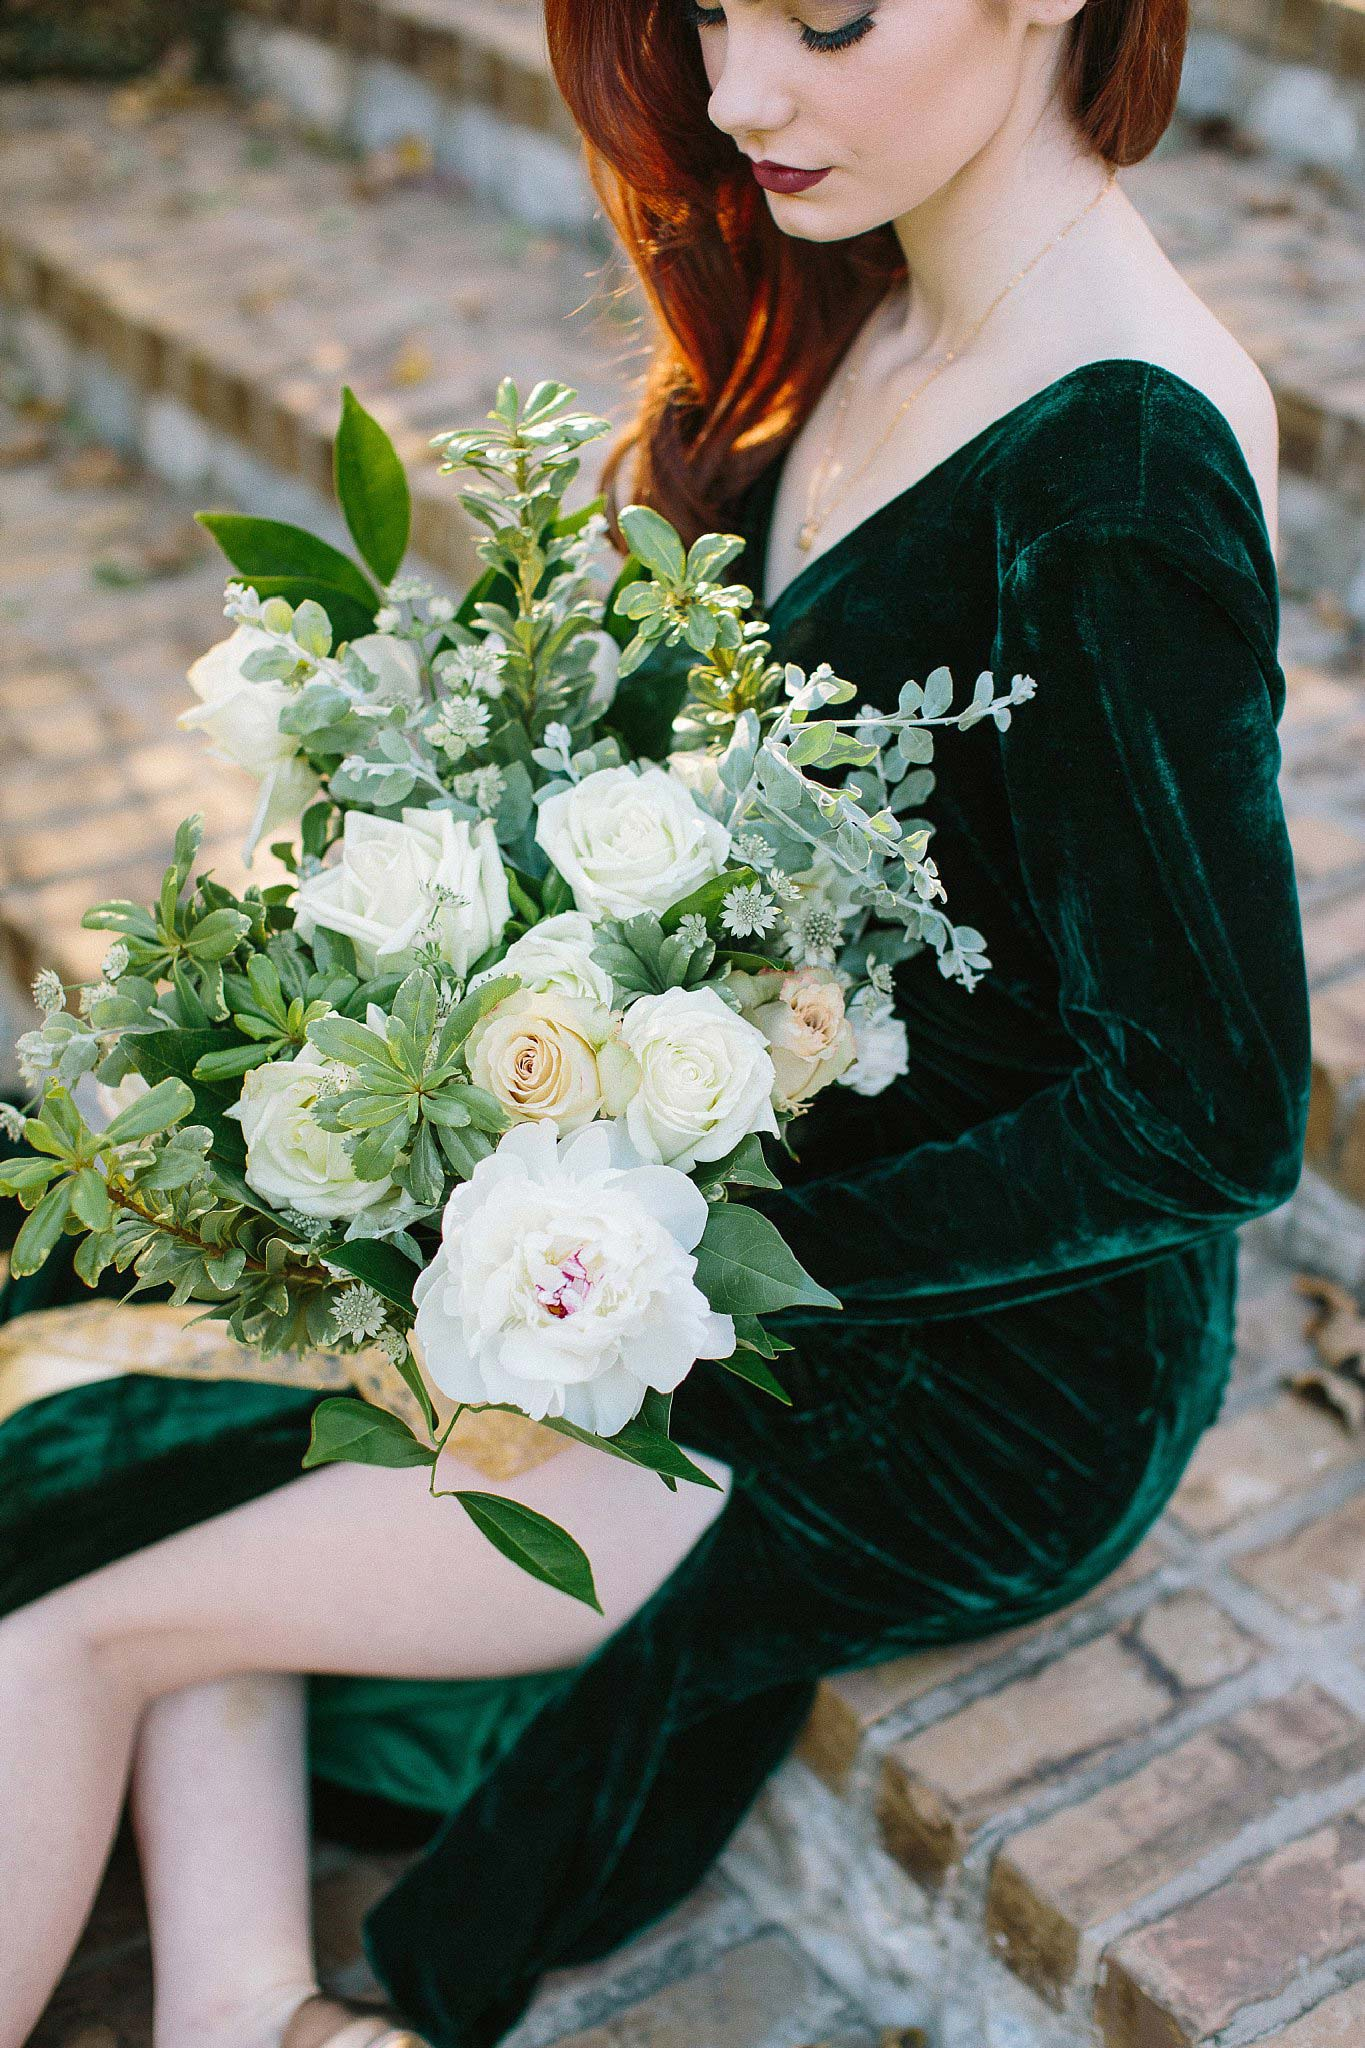 aristide mansfield wedding greenery and white flower bouquet with gold ribbon